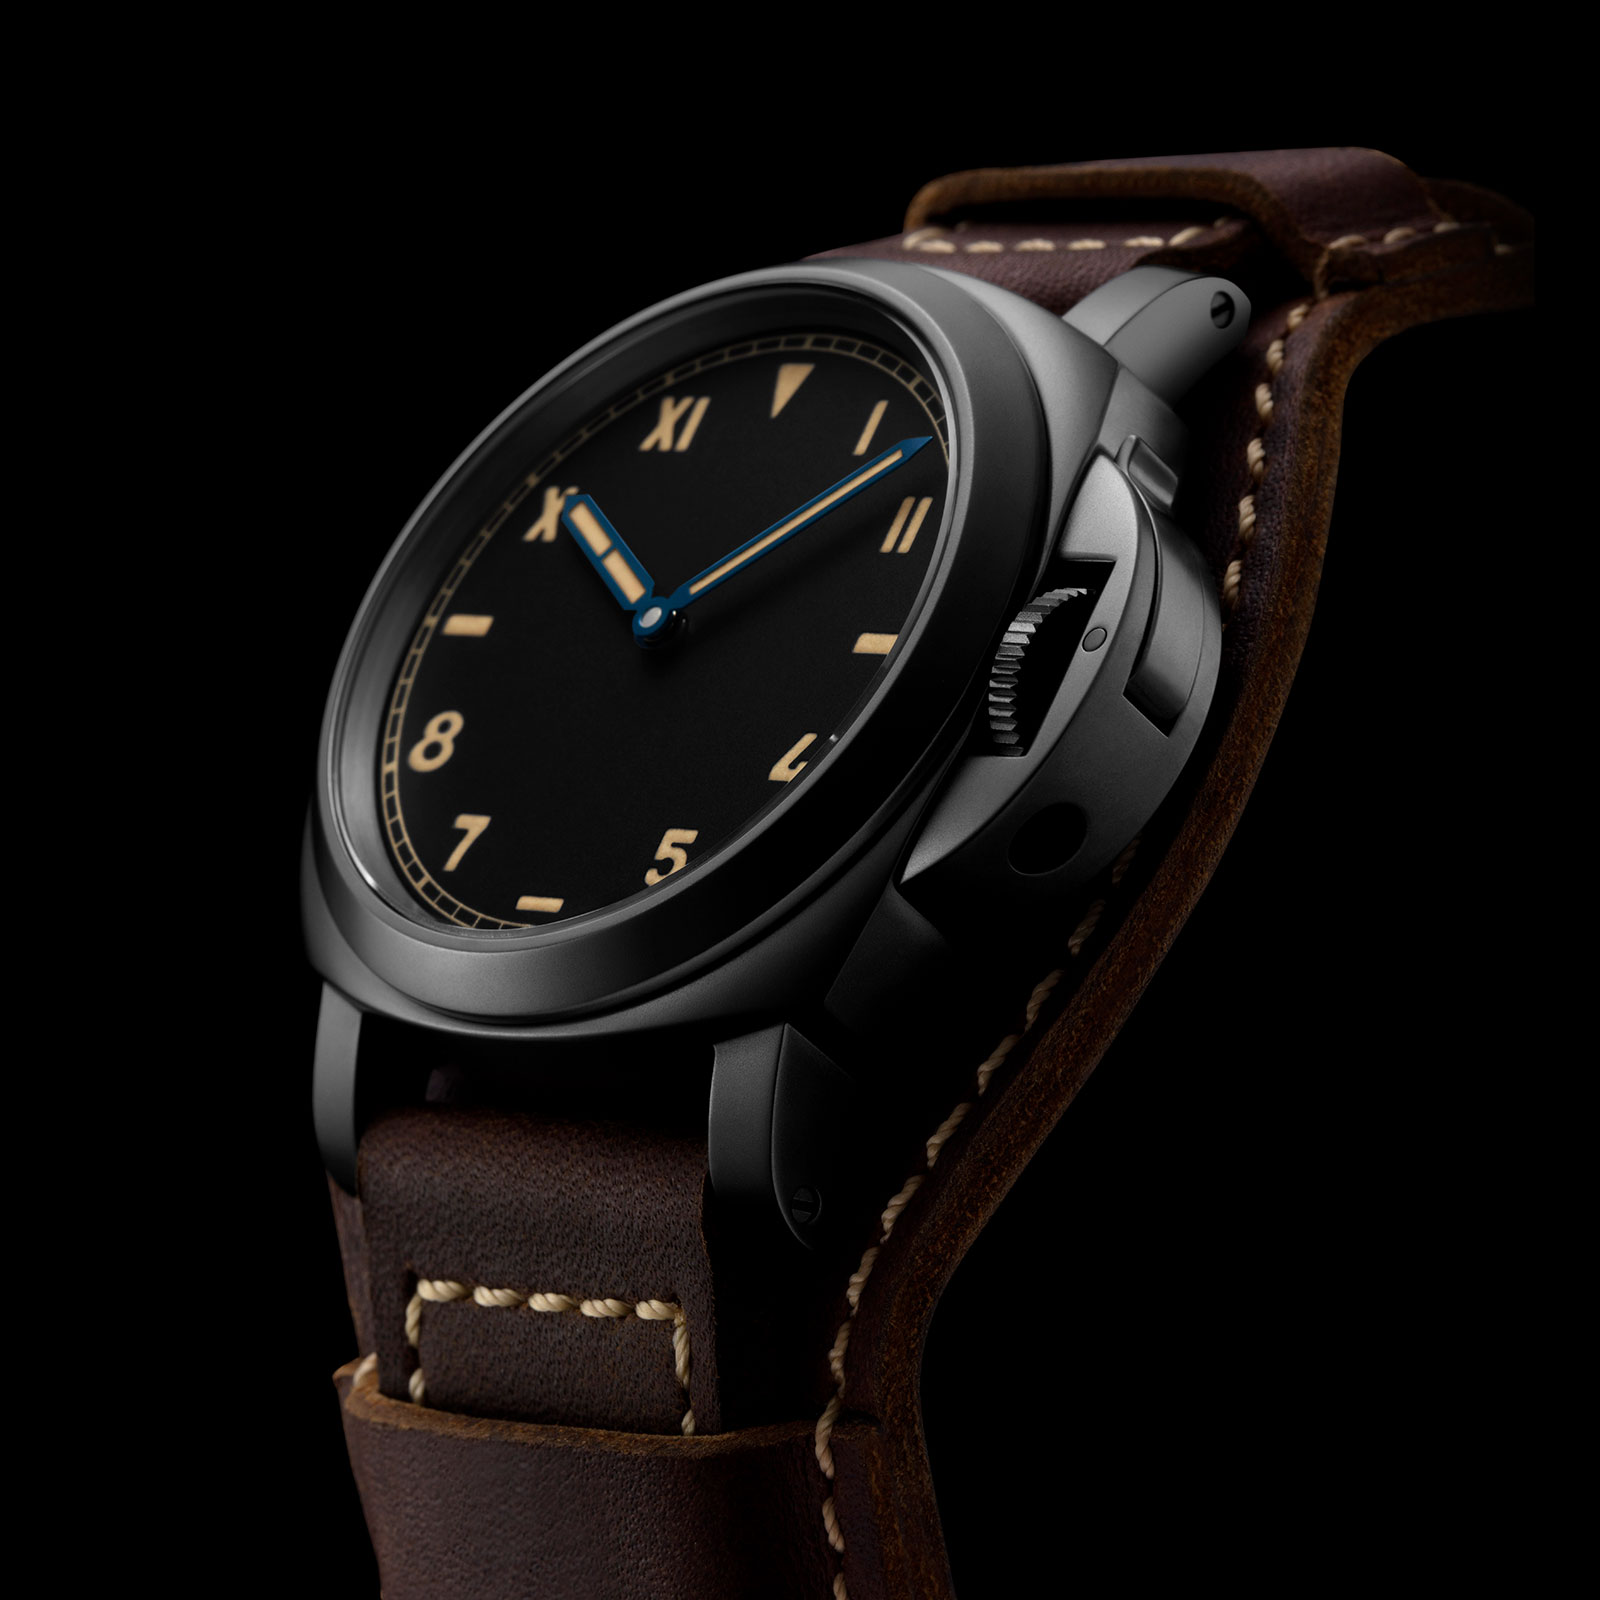 Panerai Panerai Luminor California 8 Days DLC PAM 779 3